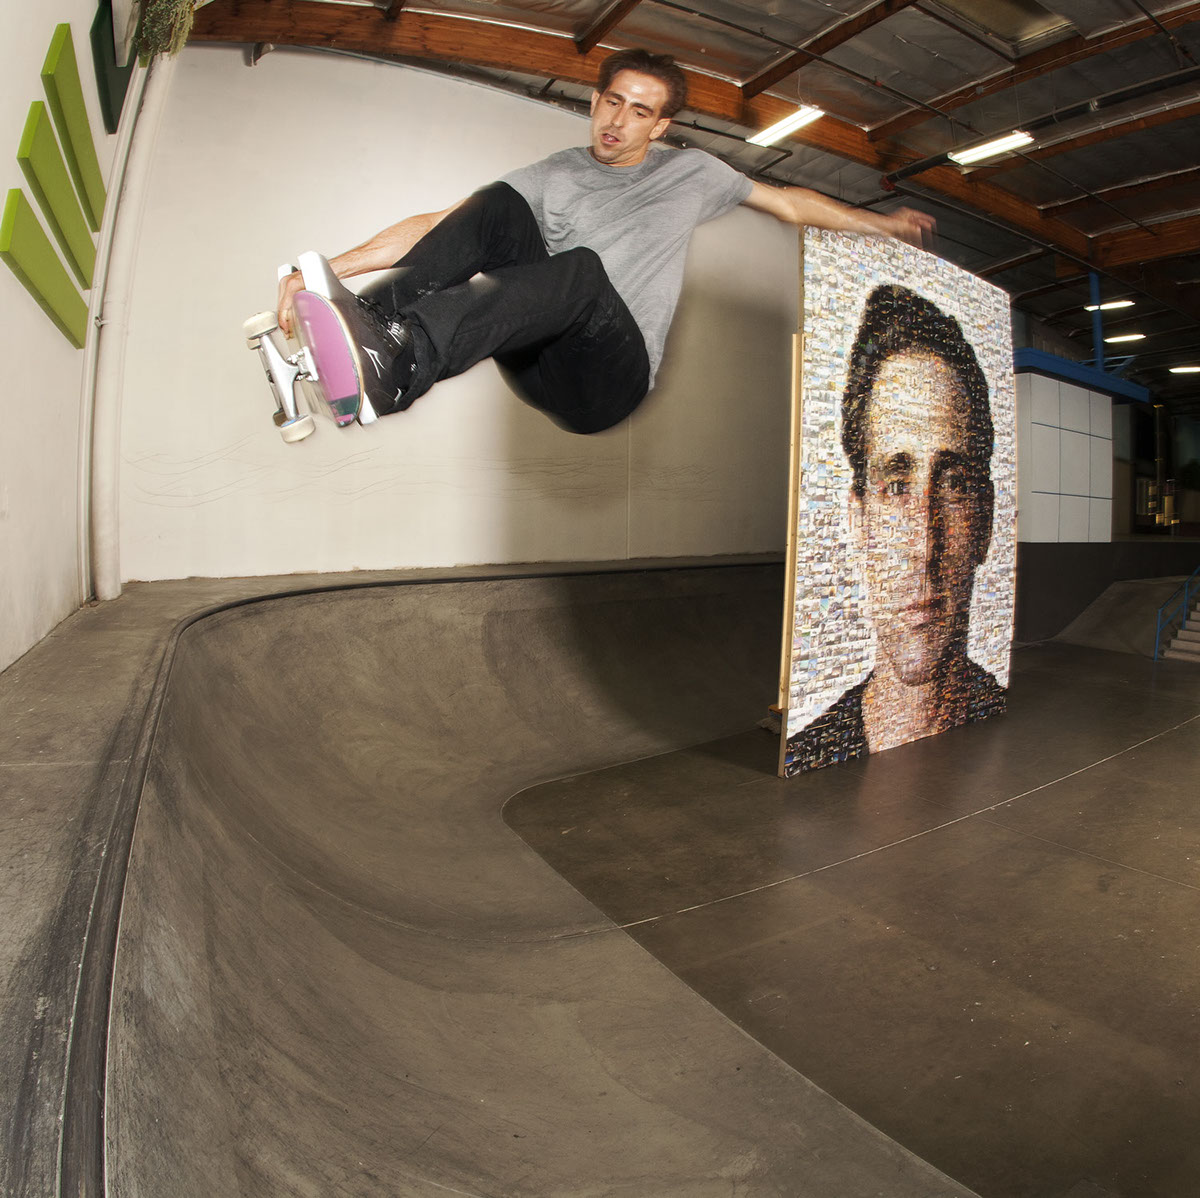 the sport of skateboarding and the culture that embodies the sport Culture before we discuss what constitutes an authentic skate- boarding identity   has addressed how skateboarding differs from mainstream sport in  the ed  templeton skate shoe ad also represents an appeal to an in.